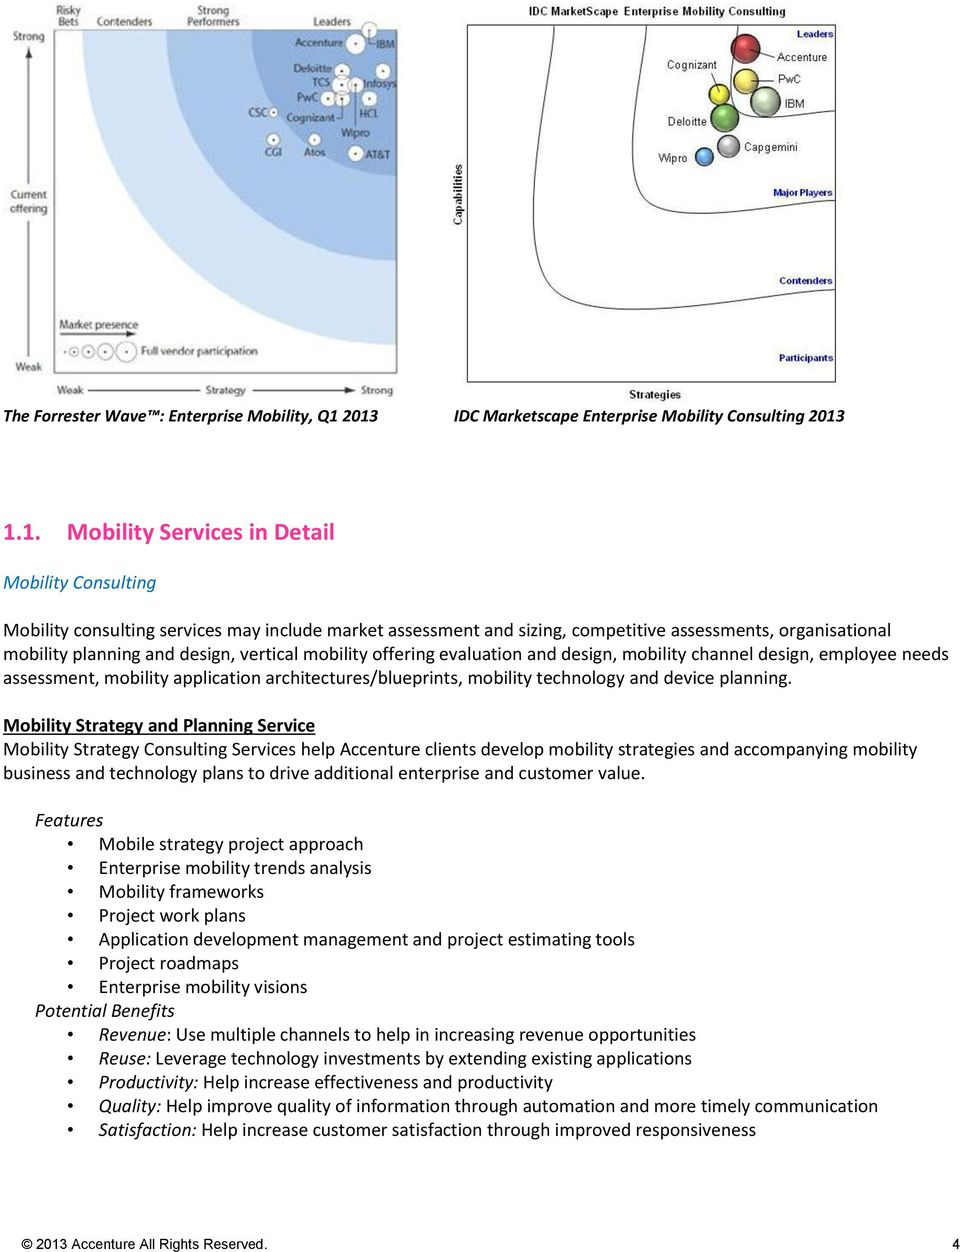 assessments, organisational mobility planning and design, vertical mobility offering evaluation and design, mobility channel design, employee needs assessment, mobility application